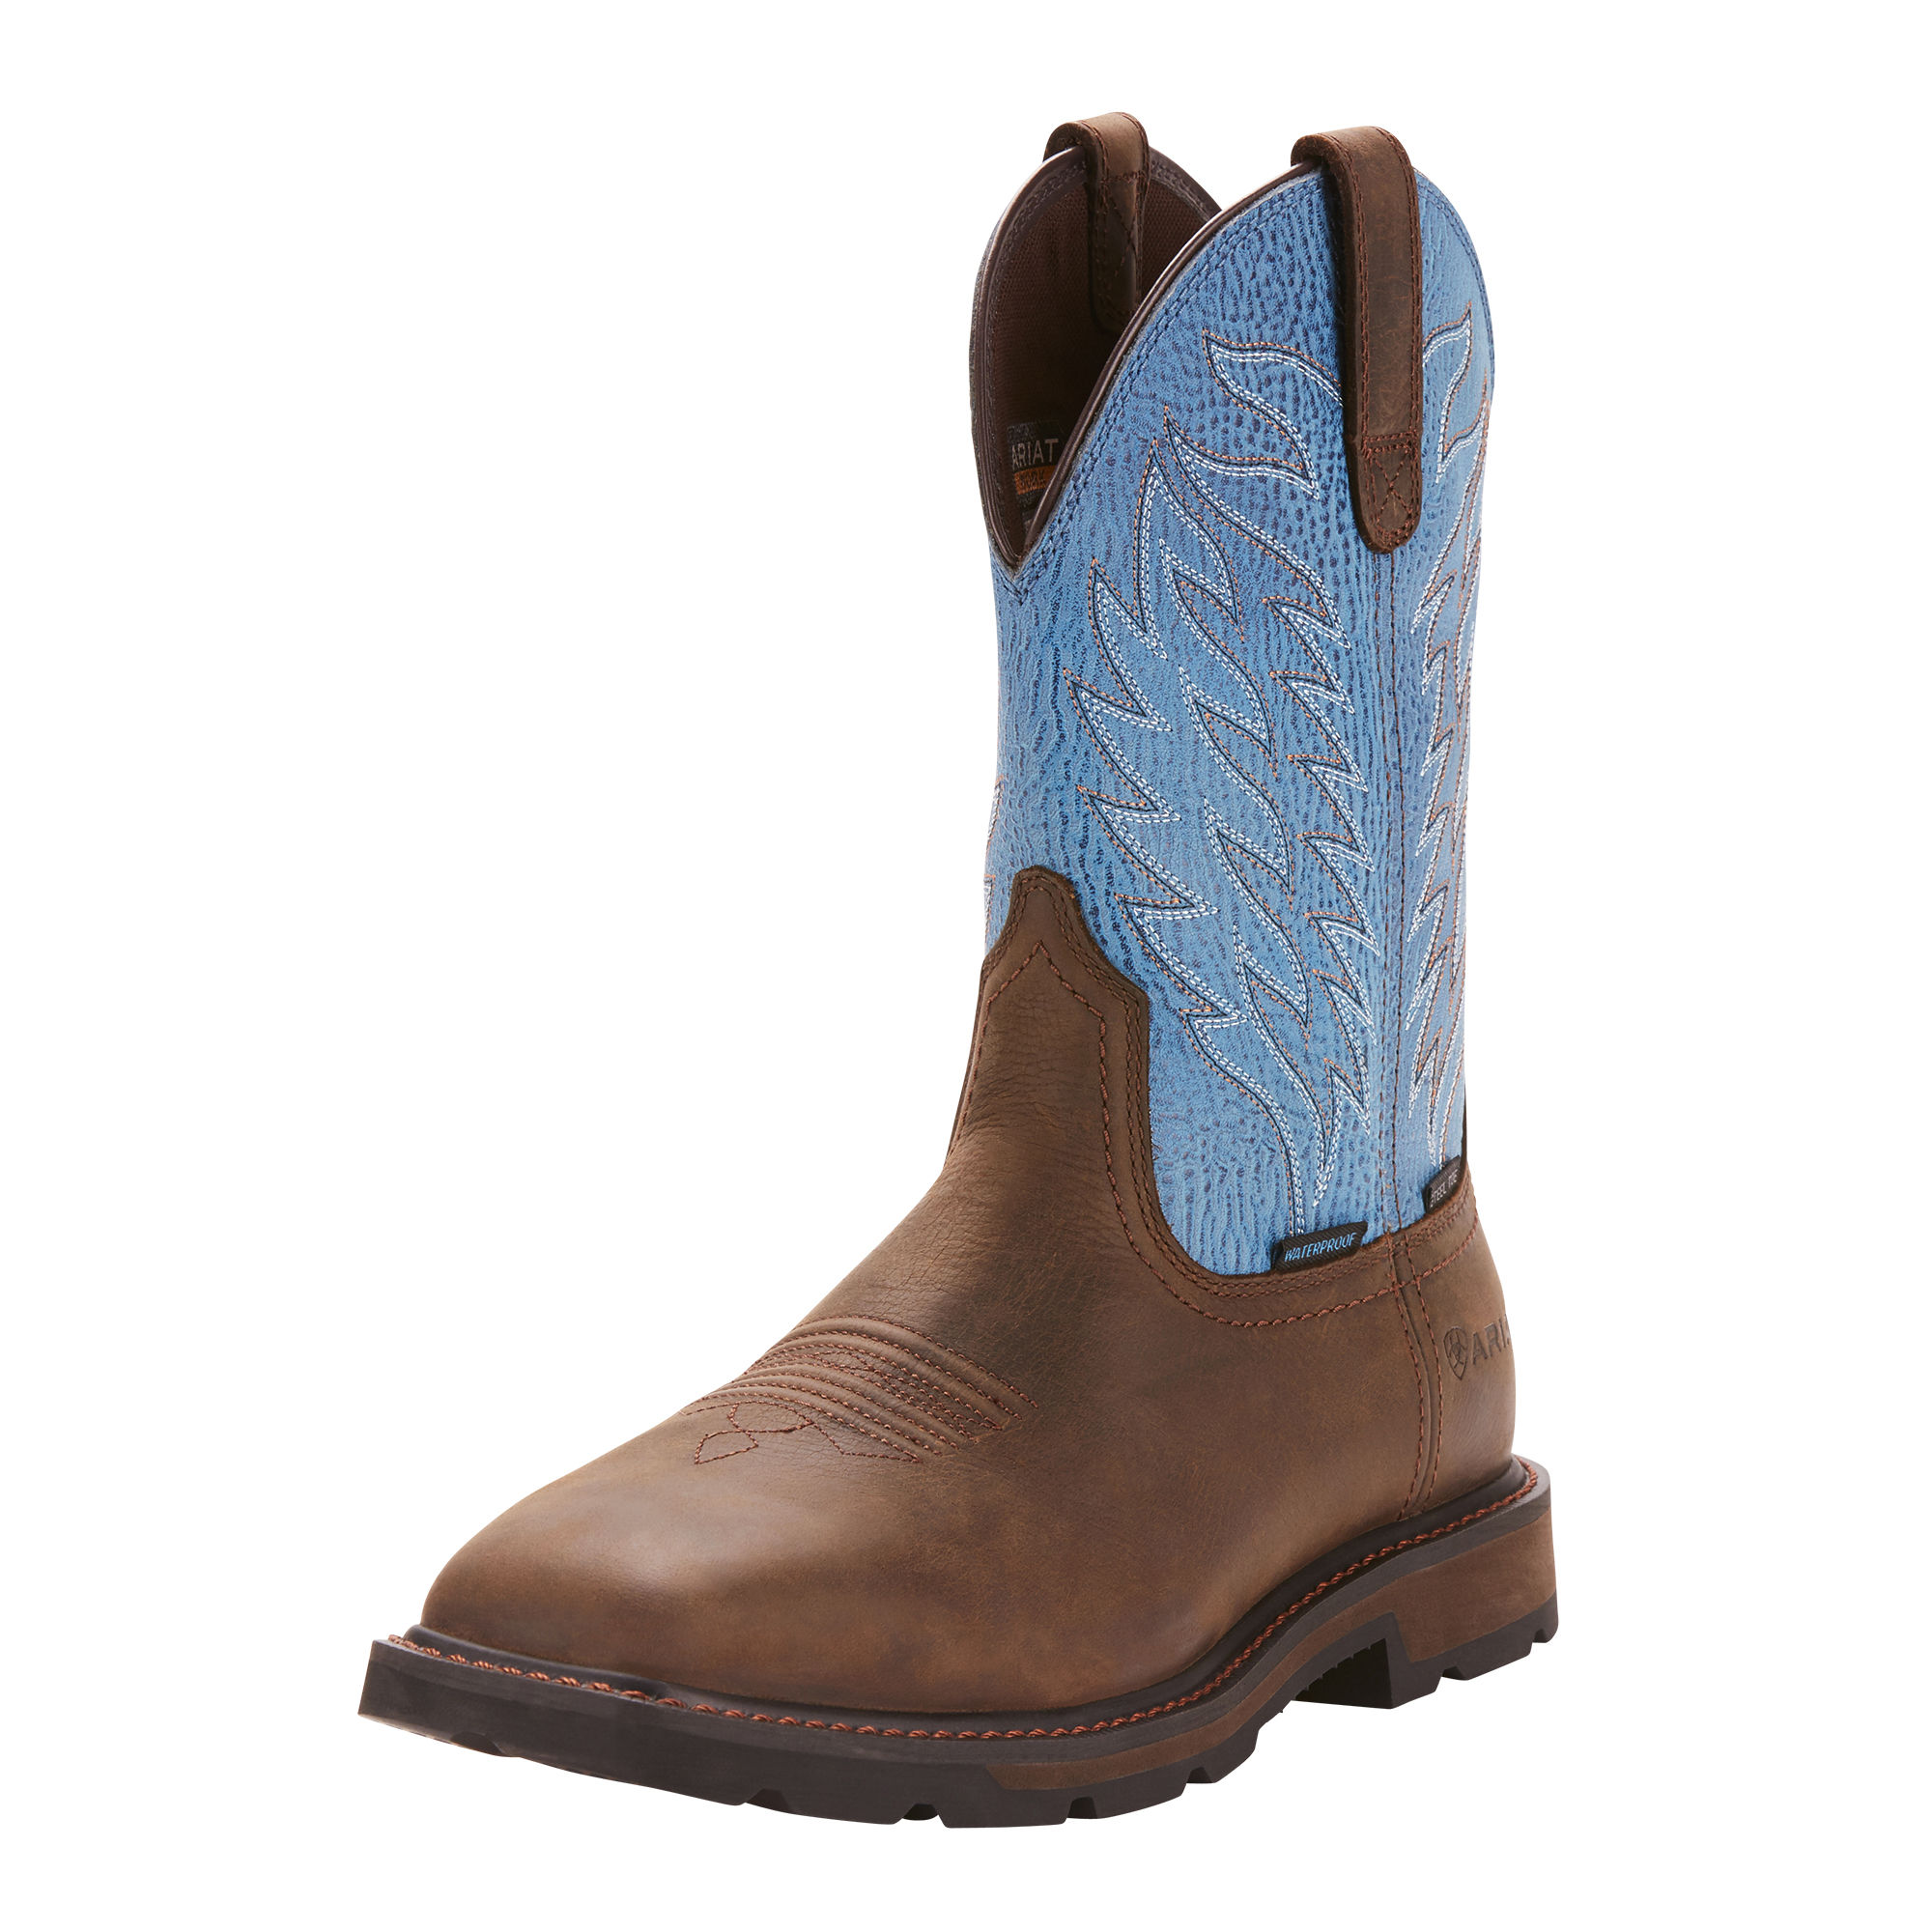 Details about Ariat 10024999 Men Groundbreaker Wide Square Toe H2O Safety  Steel Toe Work Boots